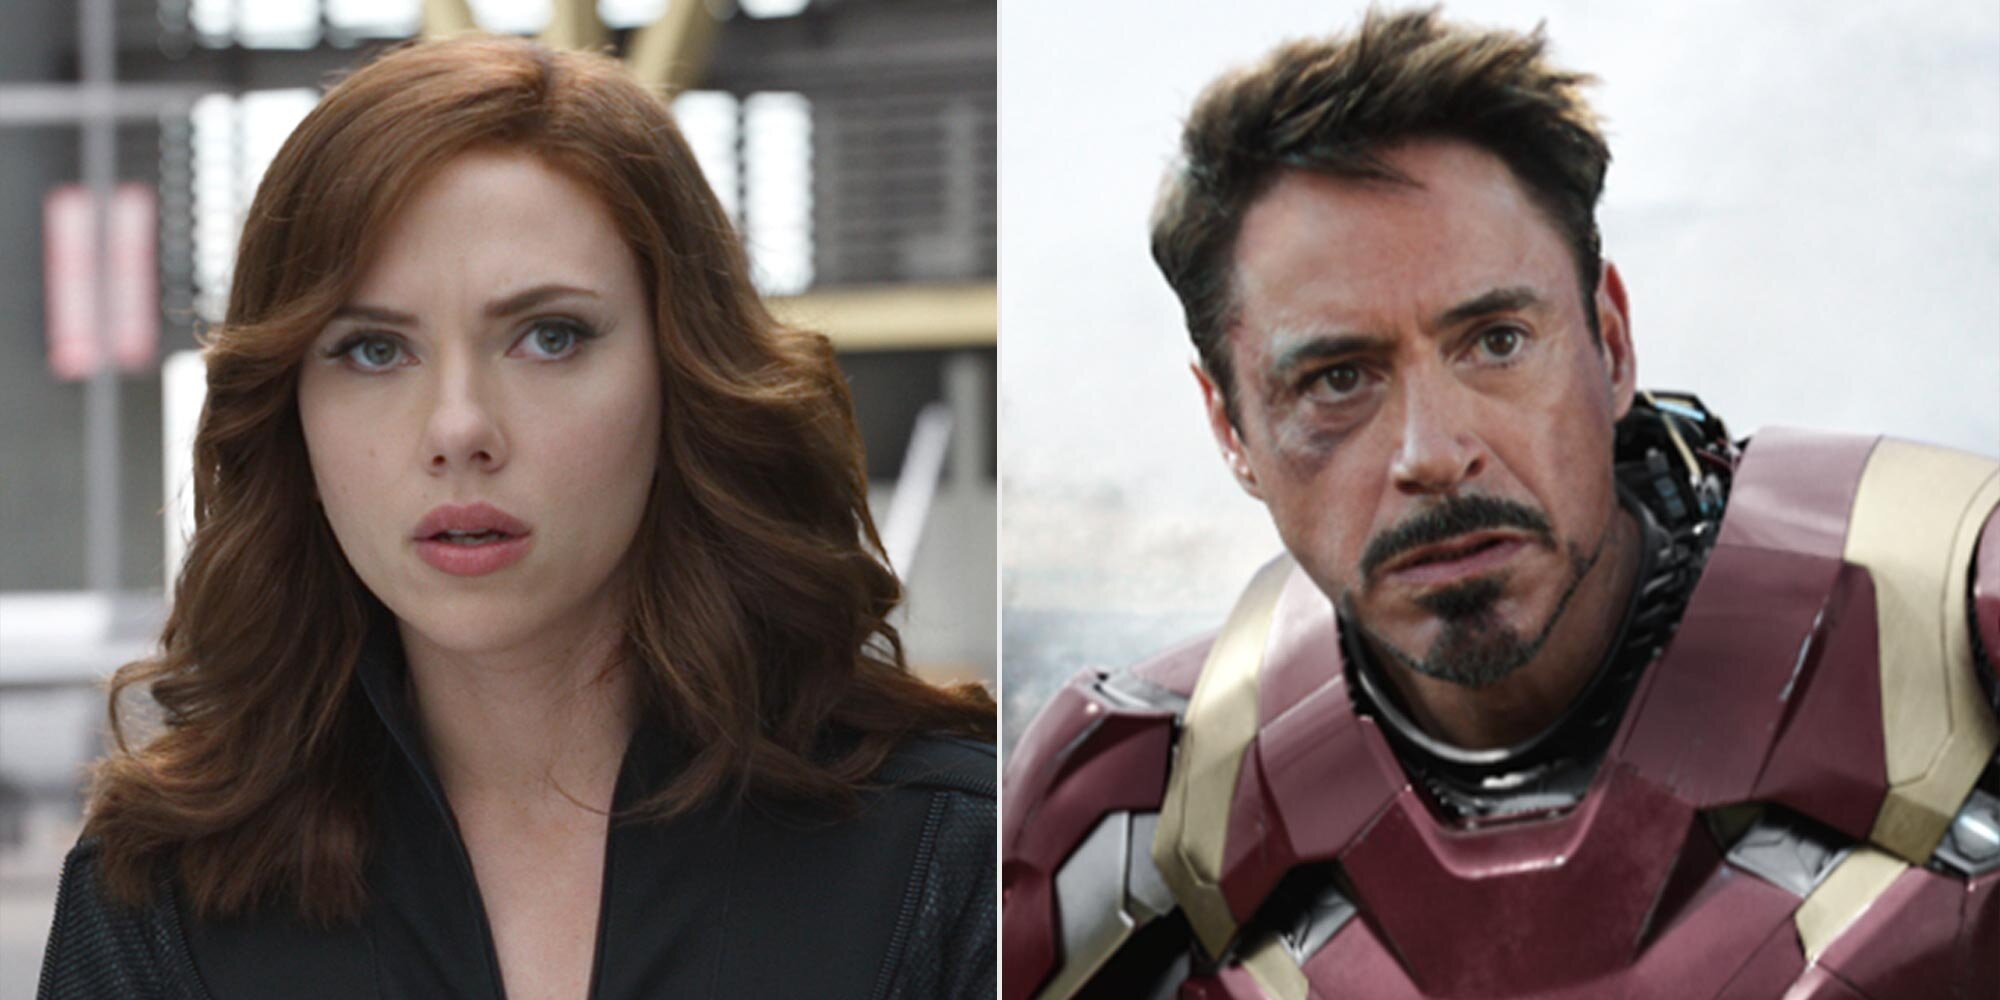 'Black Widow' writer confirms there was a Robert Downey Jr. cameo in earlier script